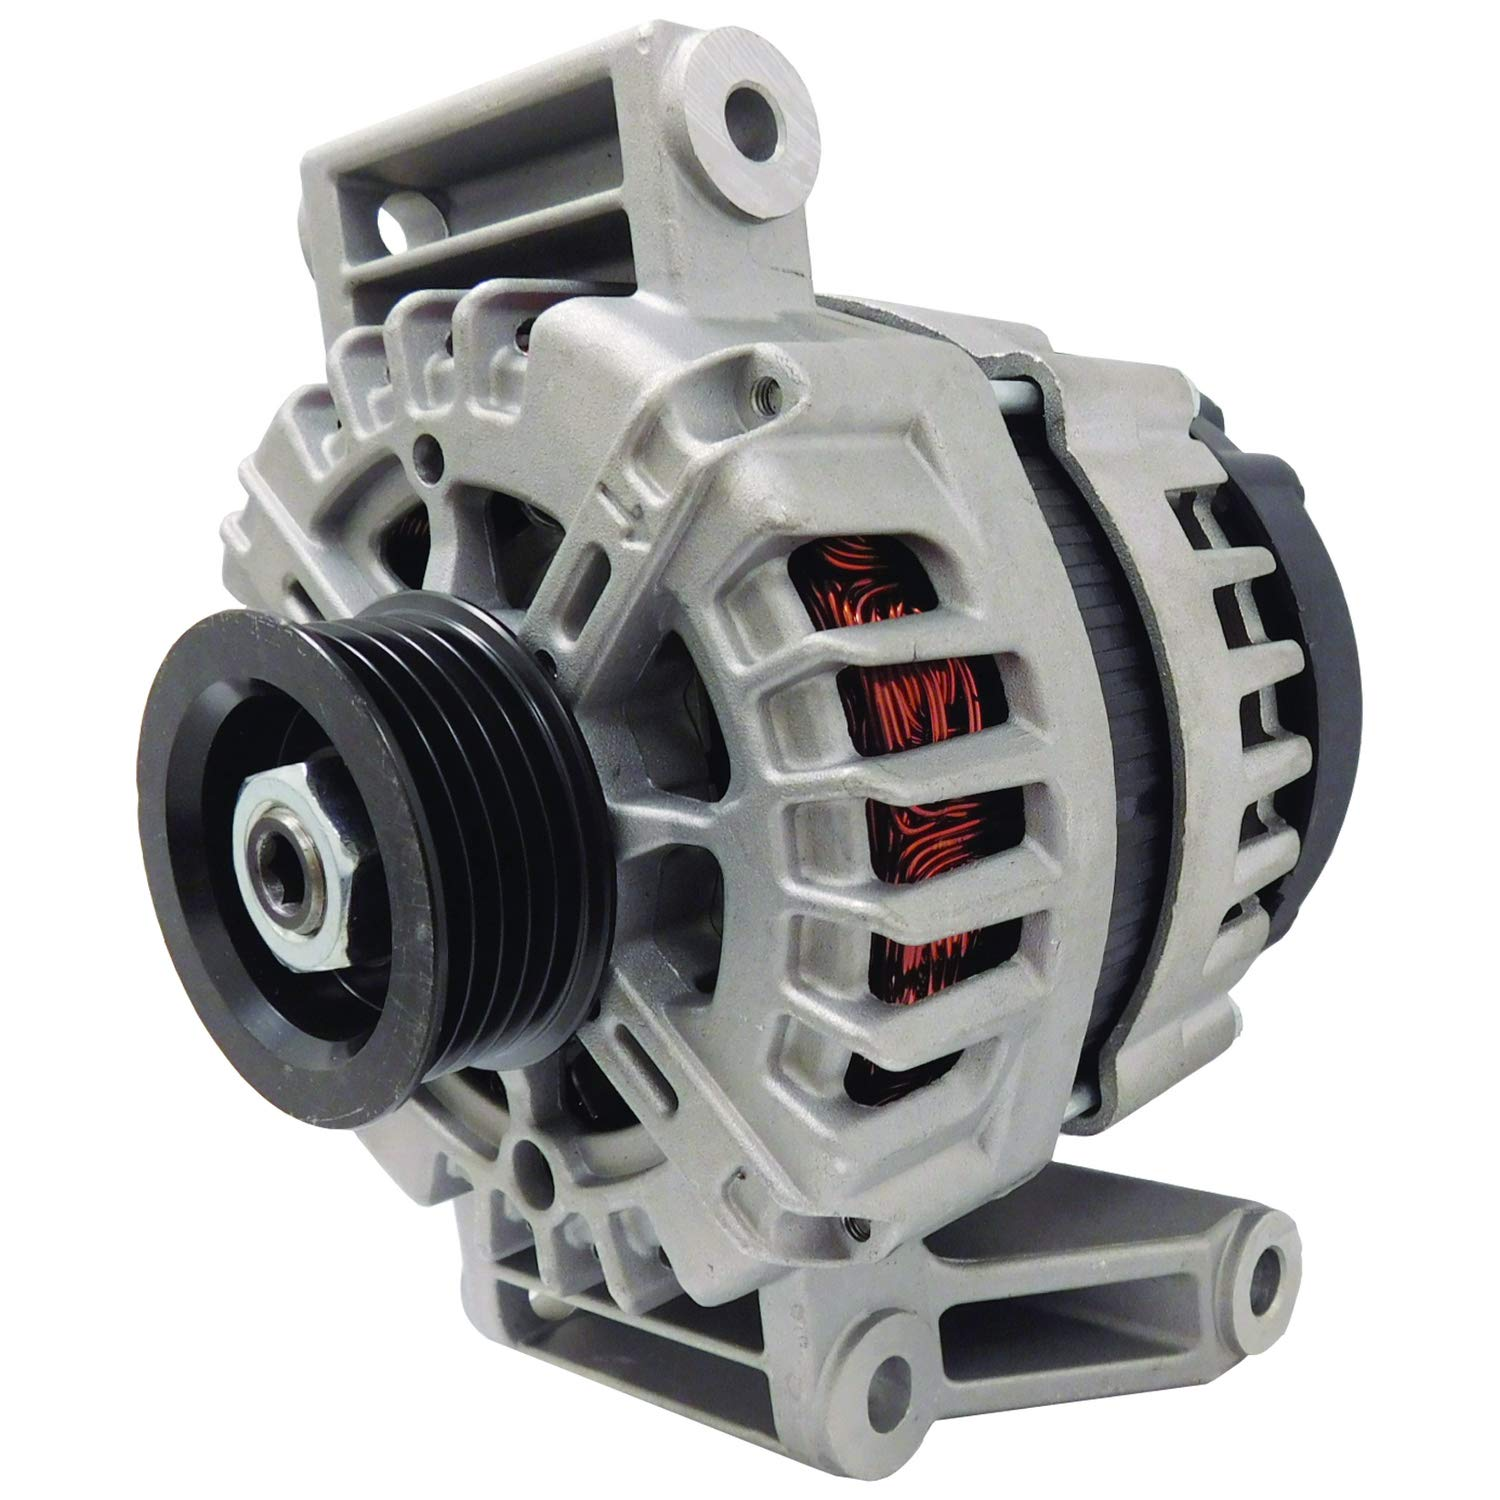 New Alternator For Chevrolet Chevy Cobalt 2.2L 2.4L 2008-2010 Saturn Aura Sky Vue 2.4L 2008-2010 15828450 22762984 Pontiac G5 2.2L 2.4L 08-10 Malibu 2.4L 2008-2012